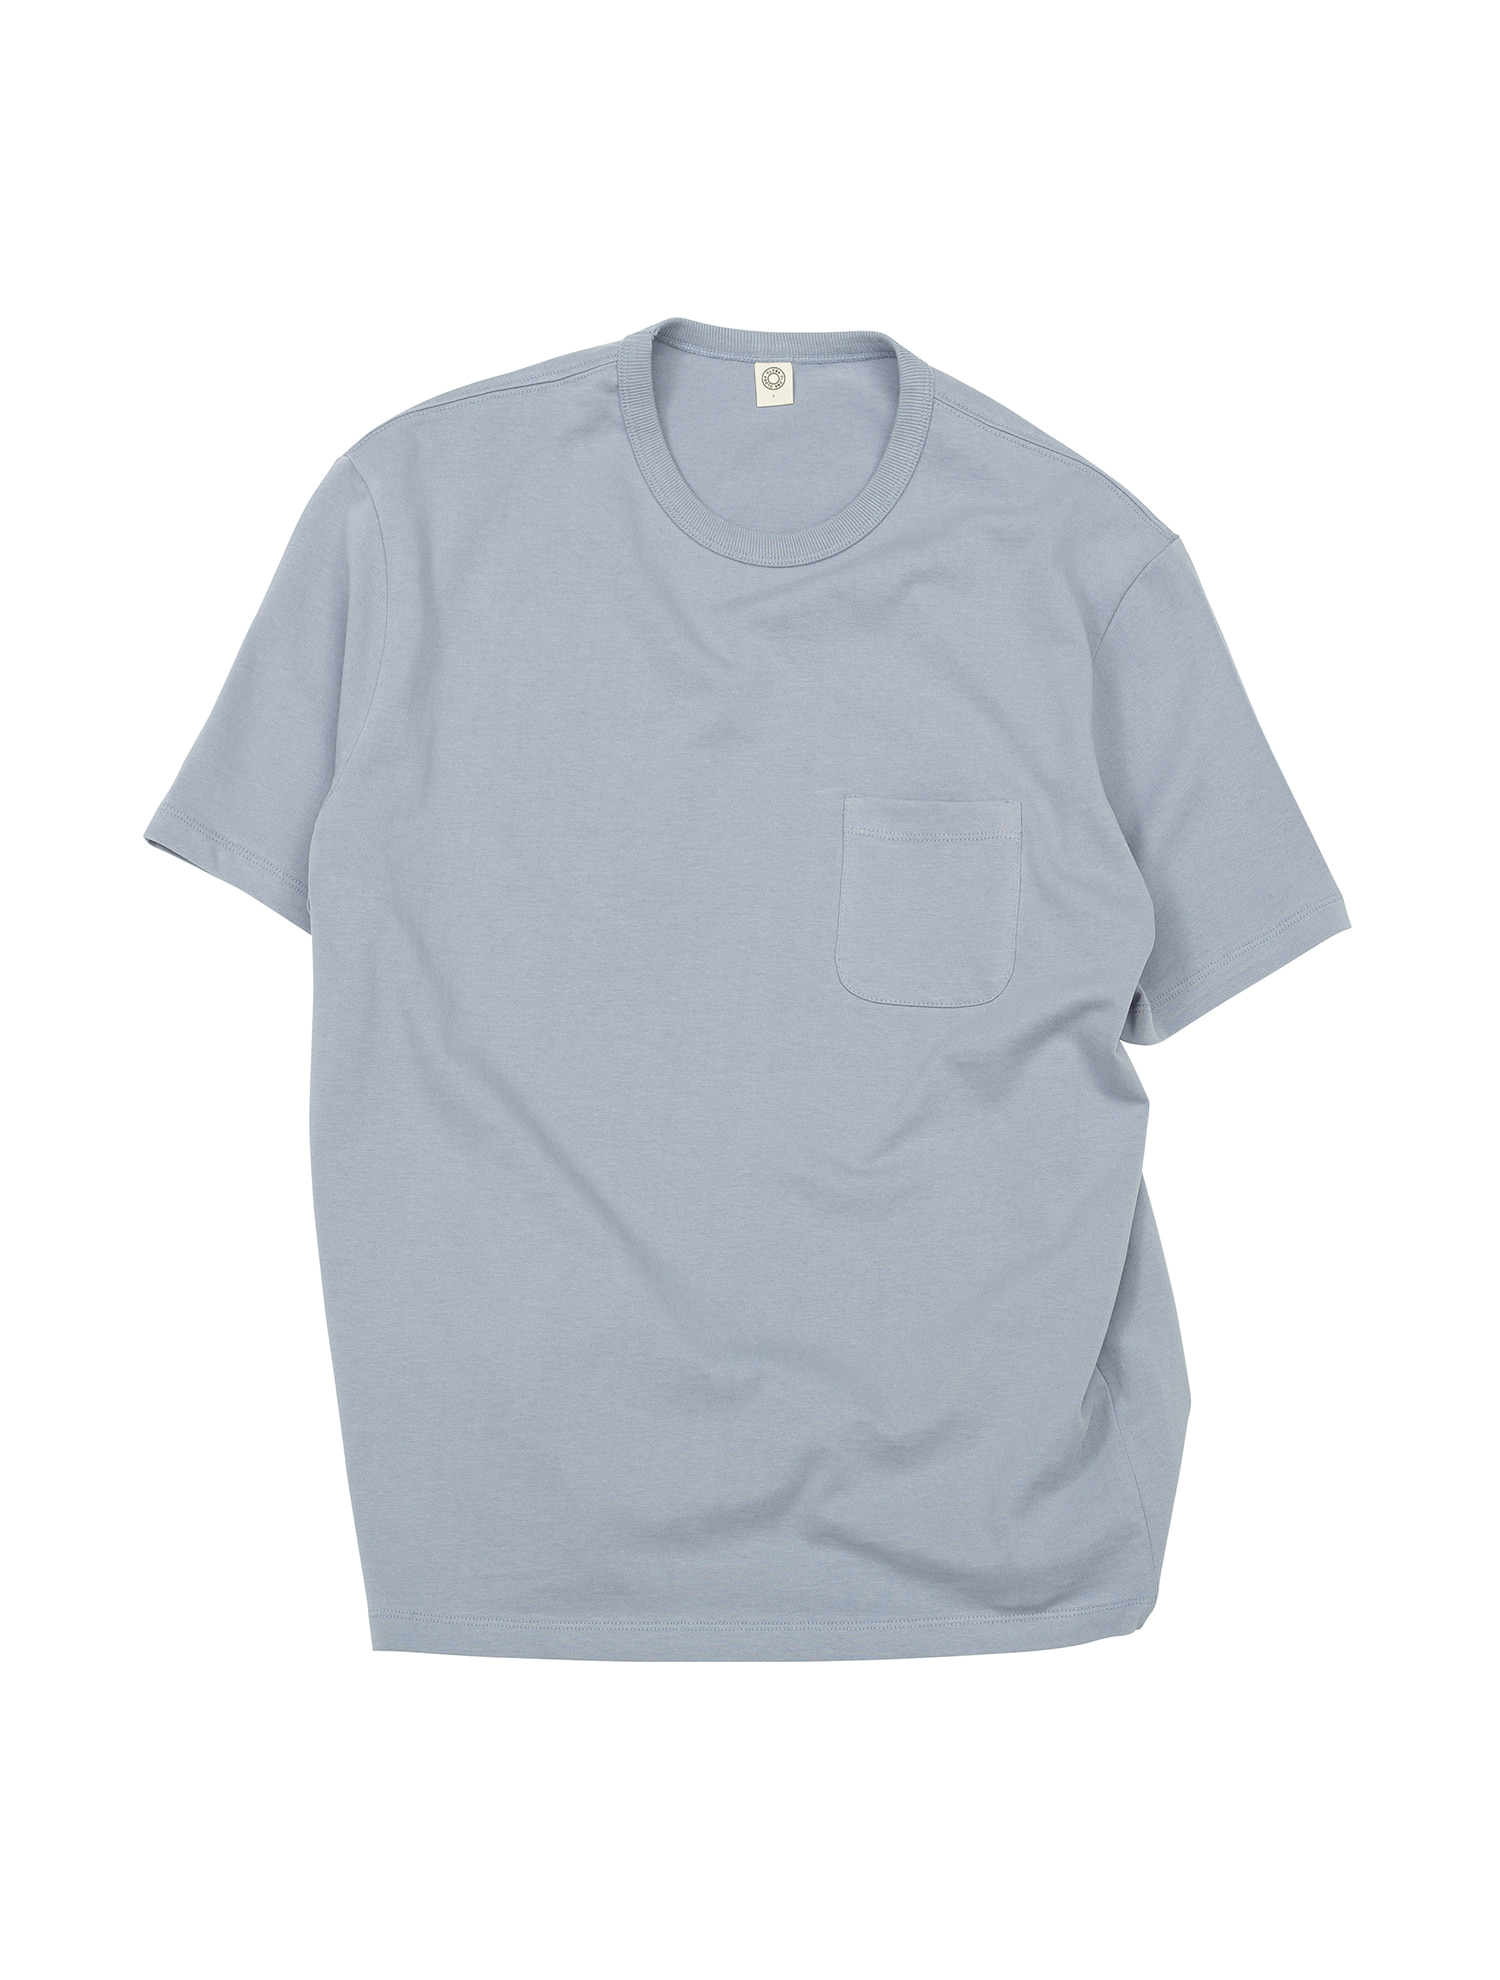 [올드비] GEN COTTON CREWNECK T-SHIRT DUSK BLUE